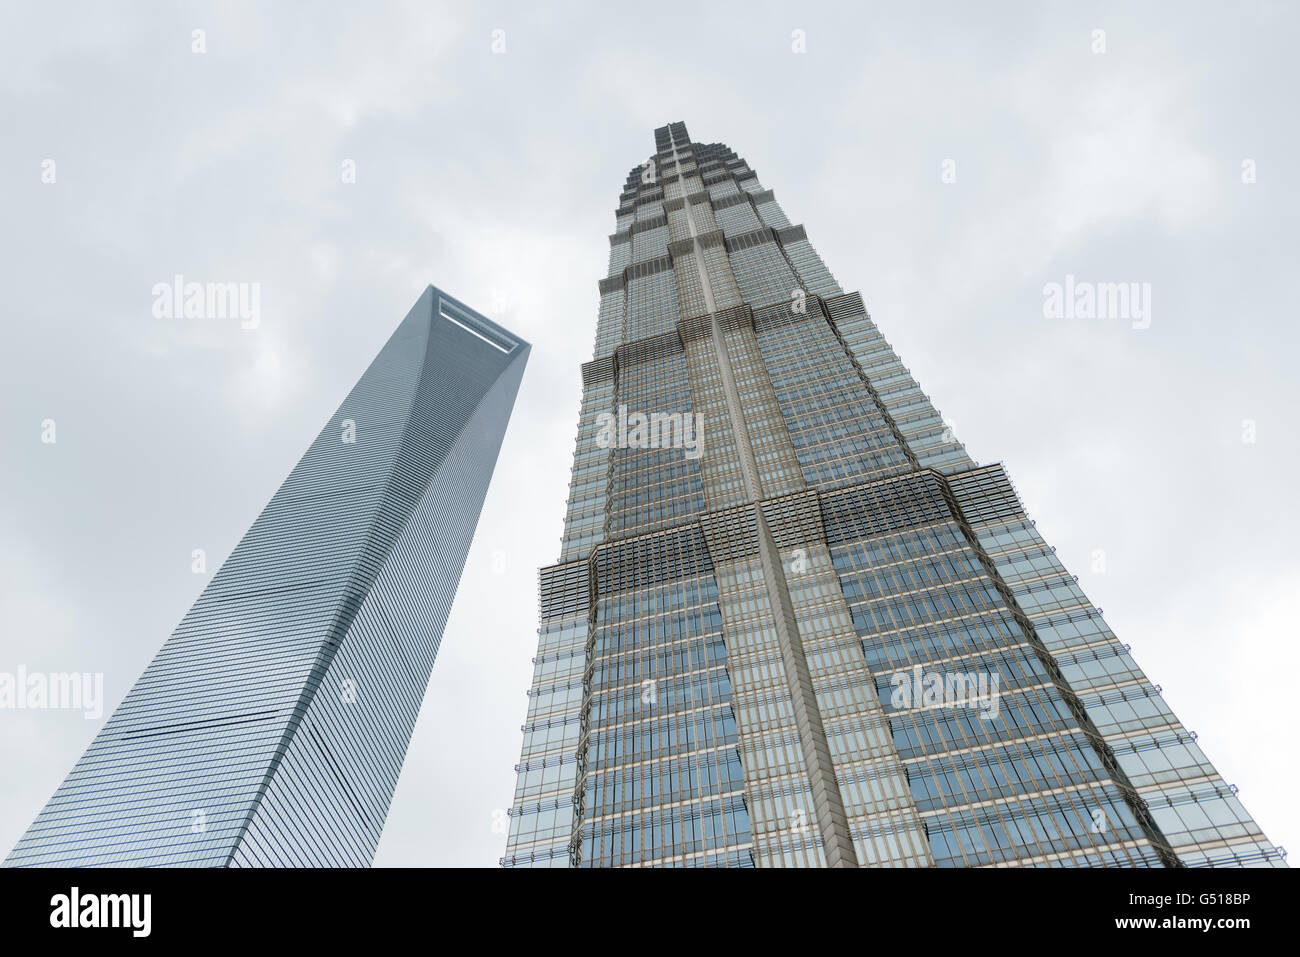 China, Shanghai, Shanghai World Financial Center and Jin Mao Tower from the frog perspective - Stock Image